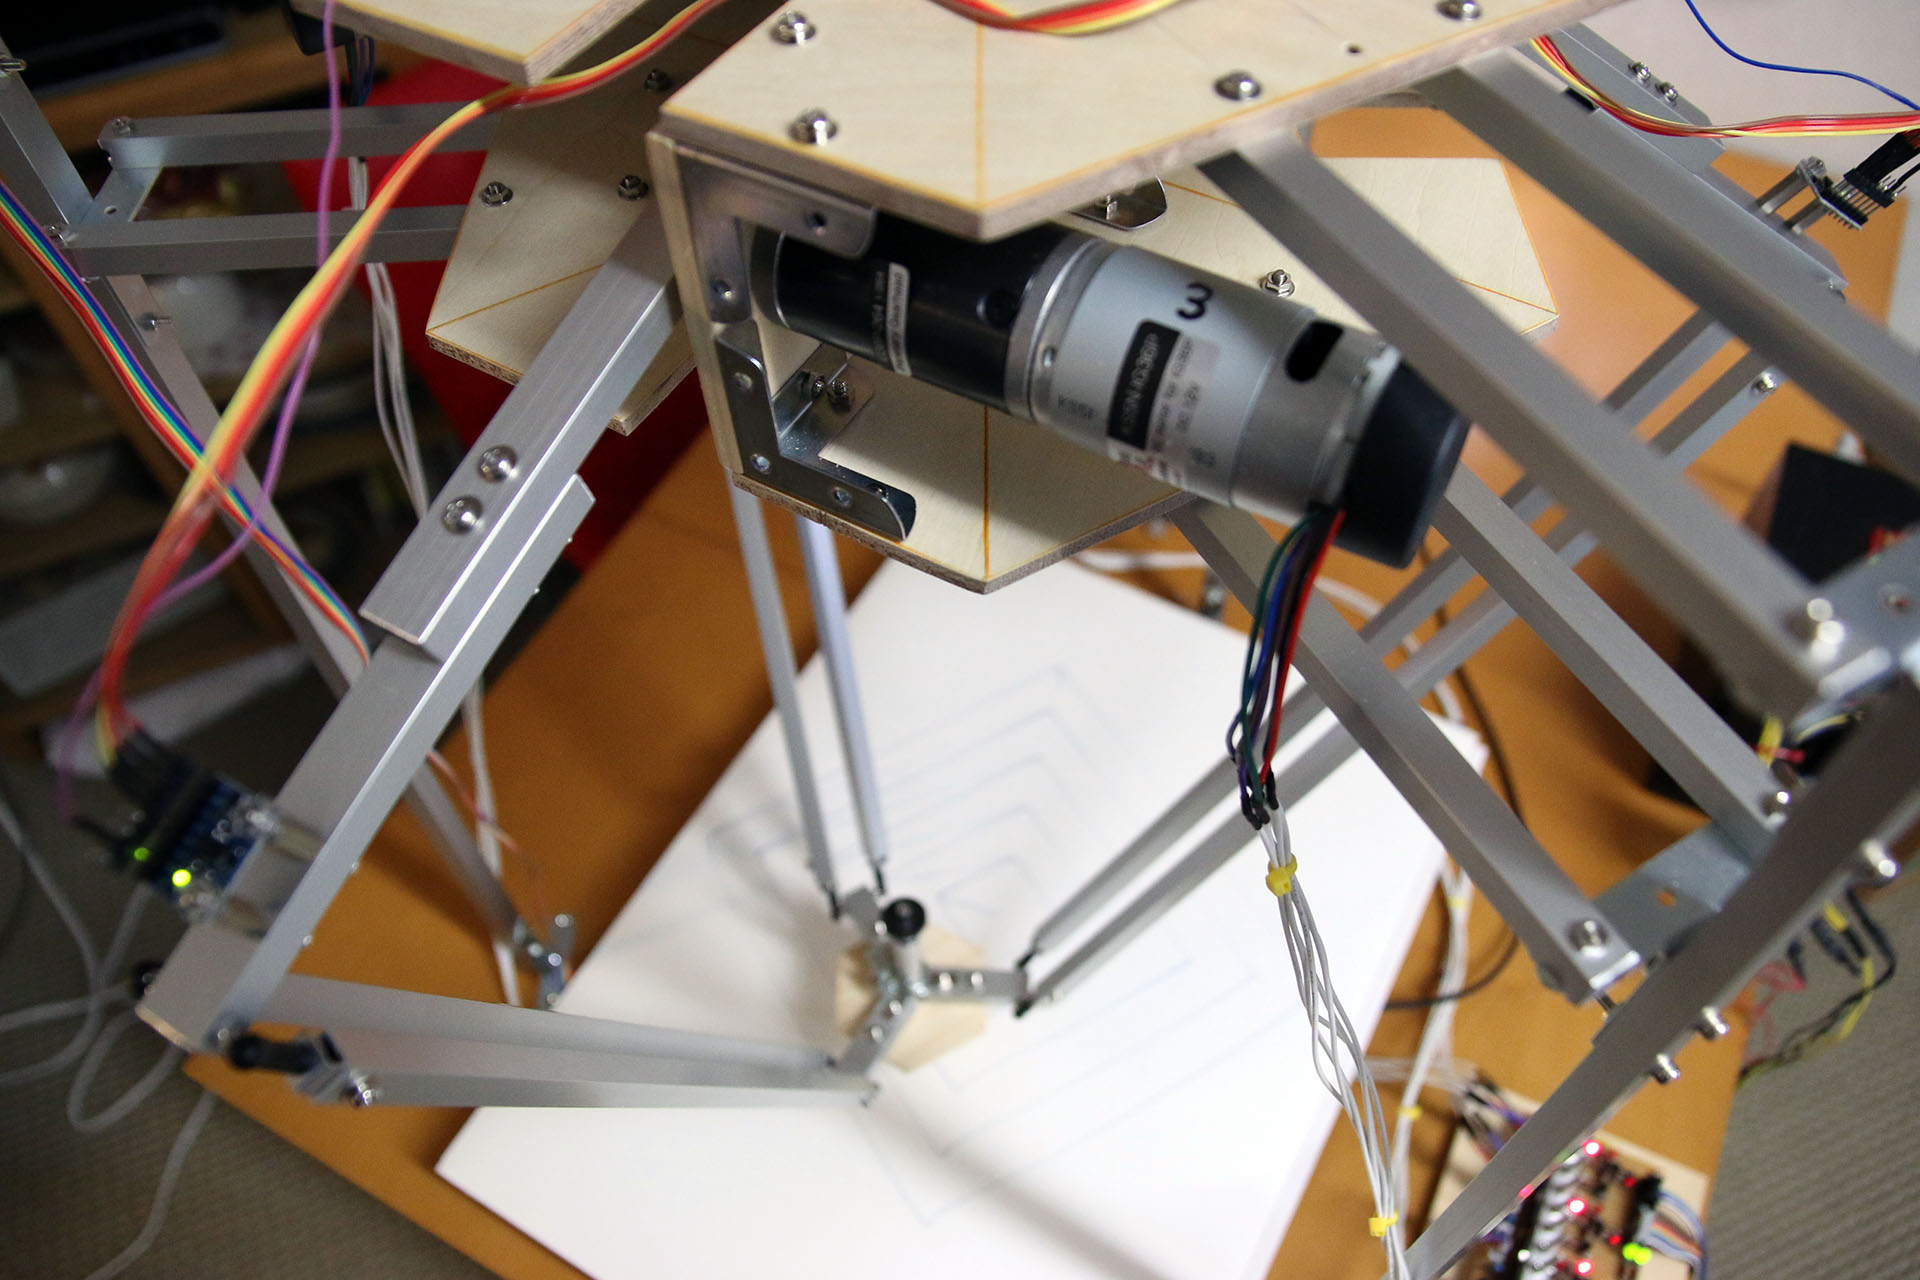 Arduino Delta Robot Electron Dust 12v Stepper Motor Geared 4 Phase 5 Wires For Experiment